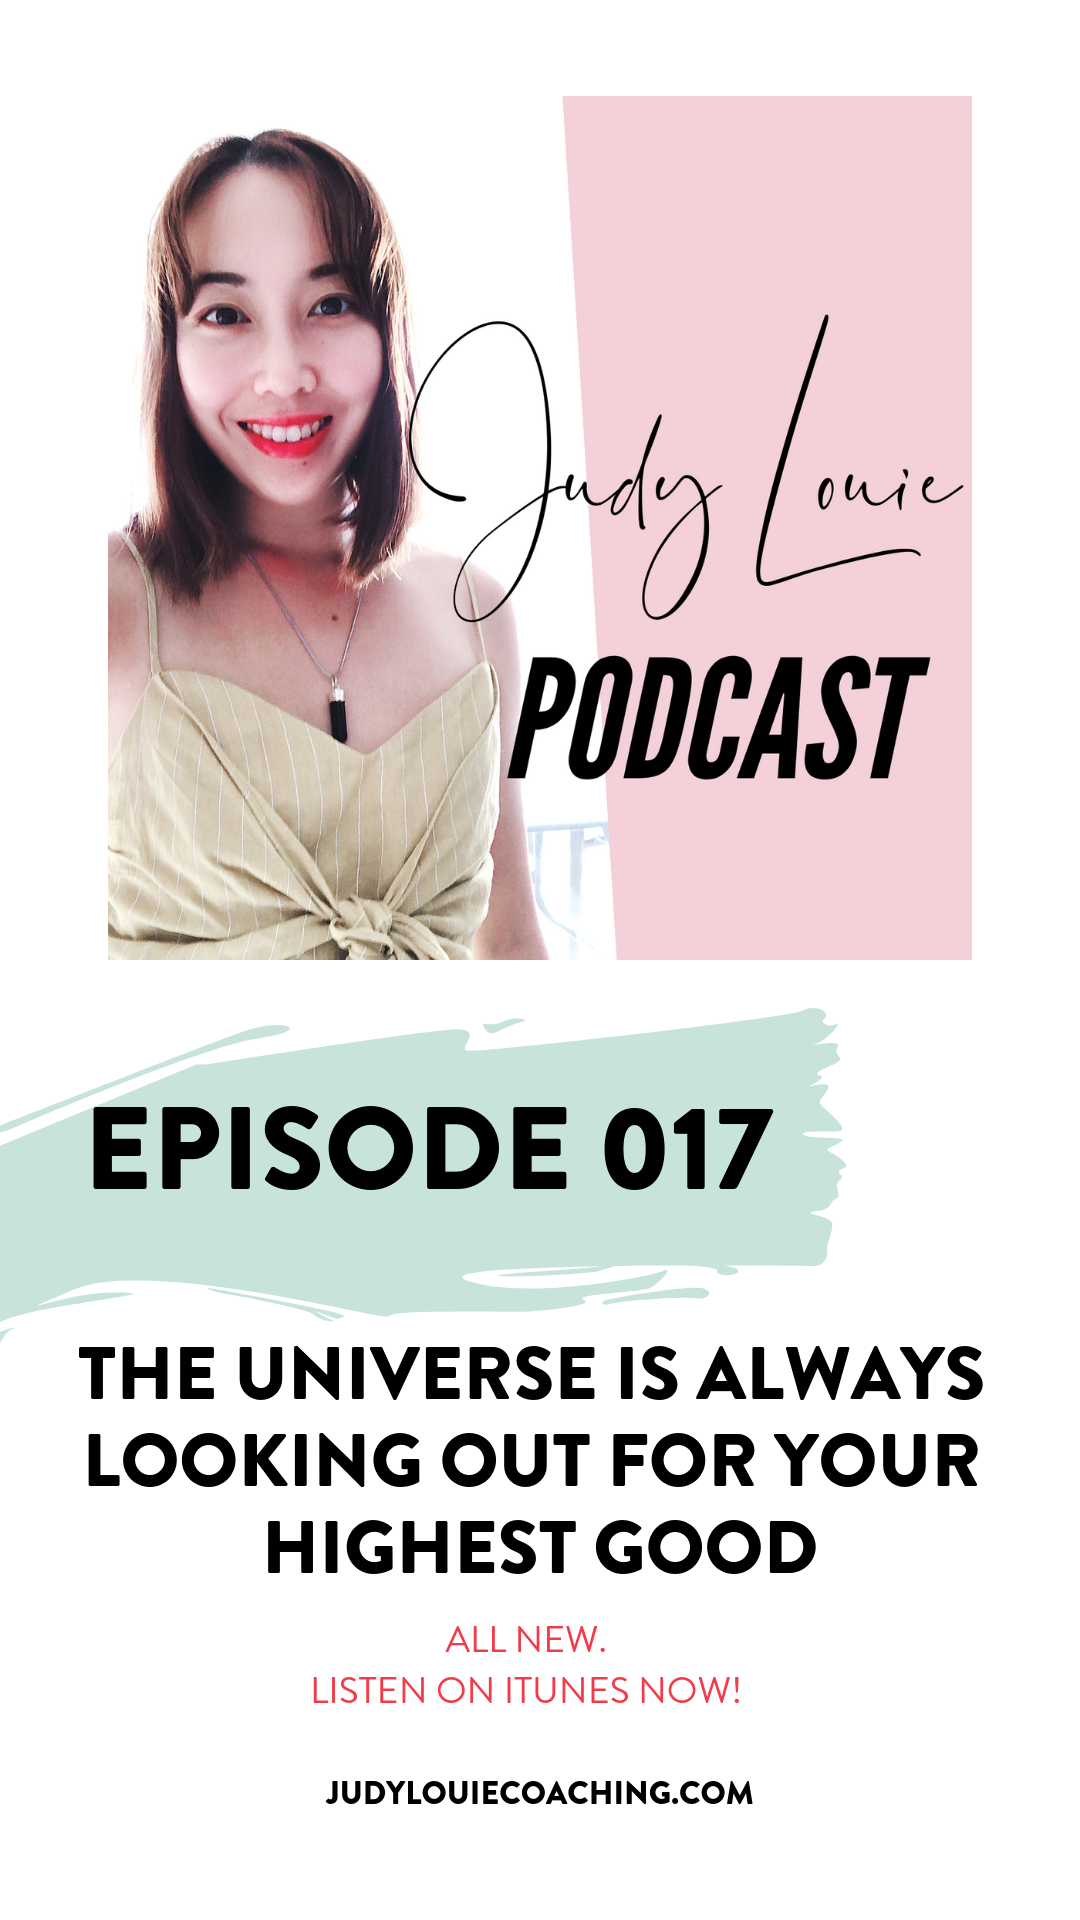 judy louie podcast - univere highest good ep017.png